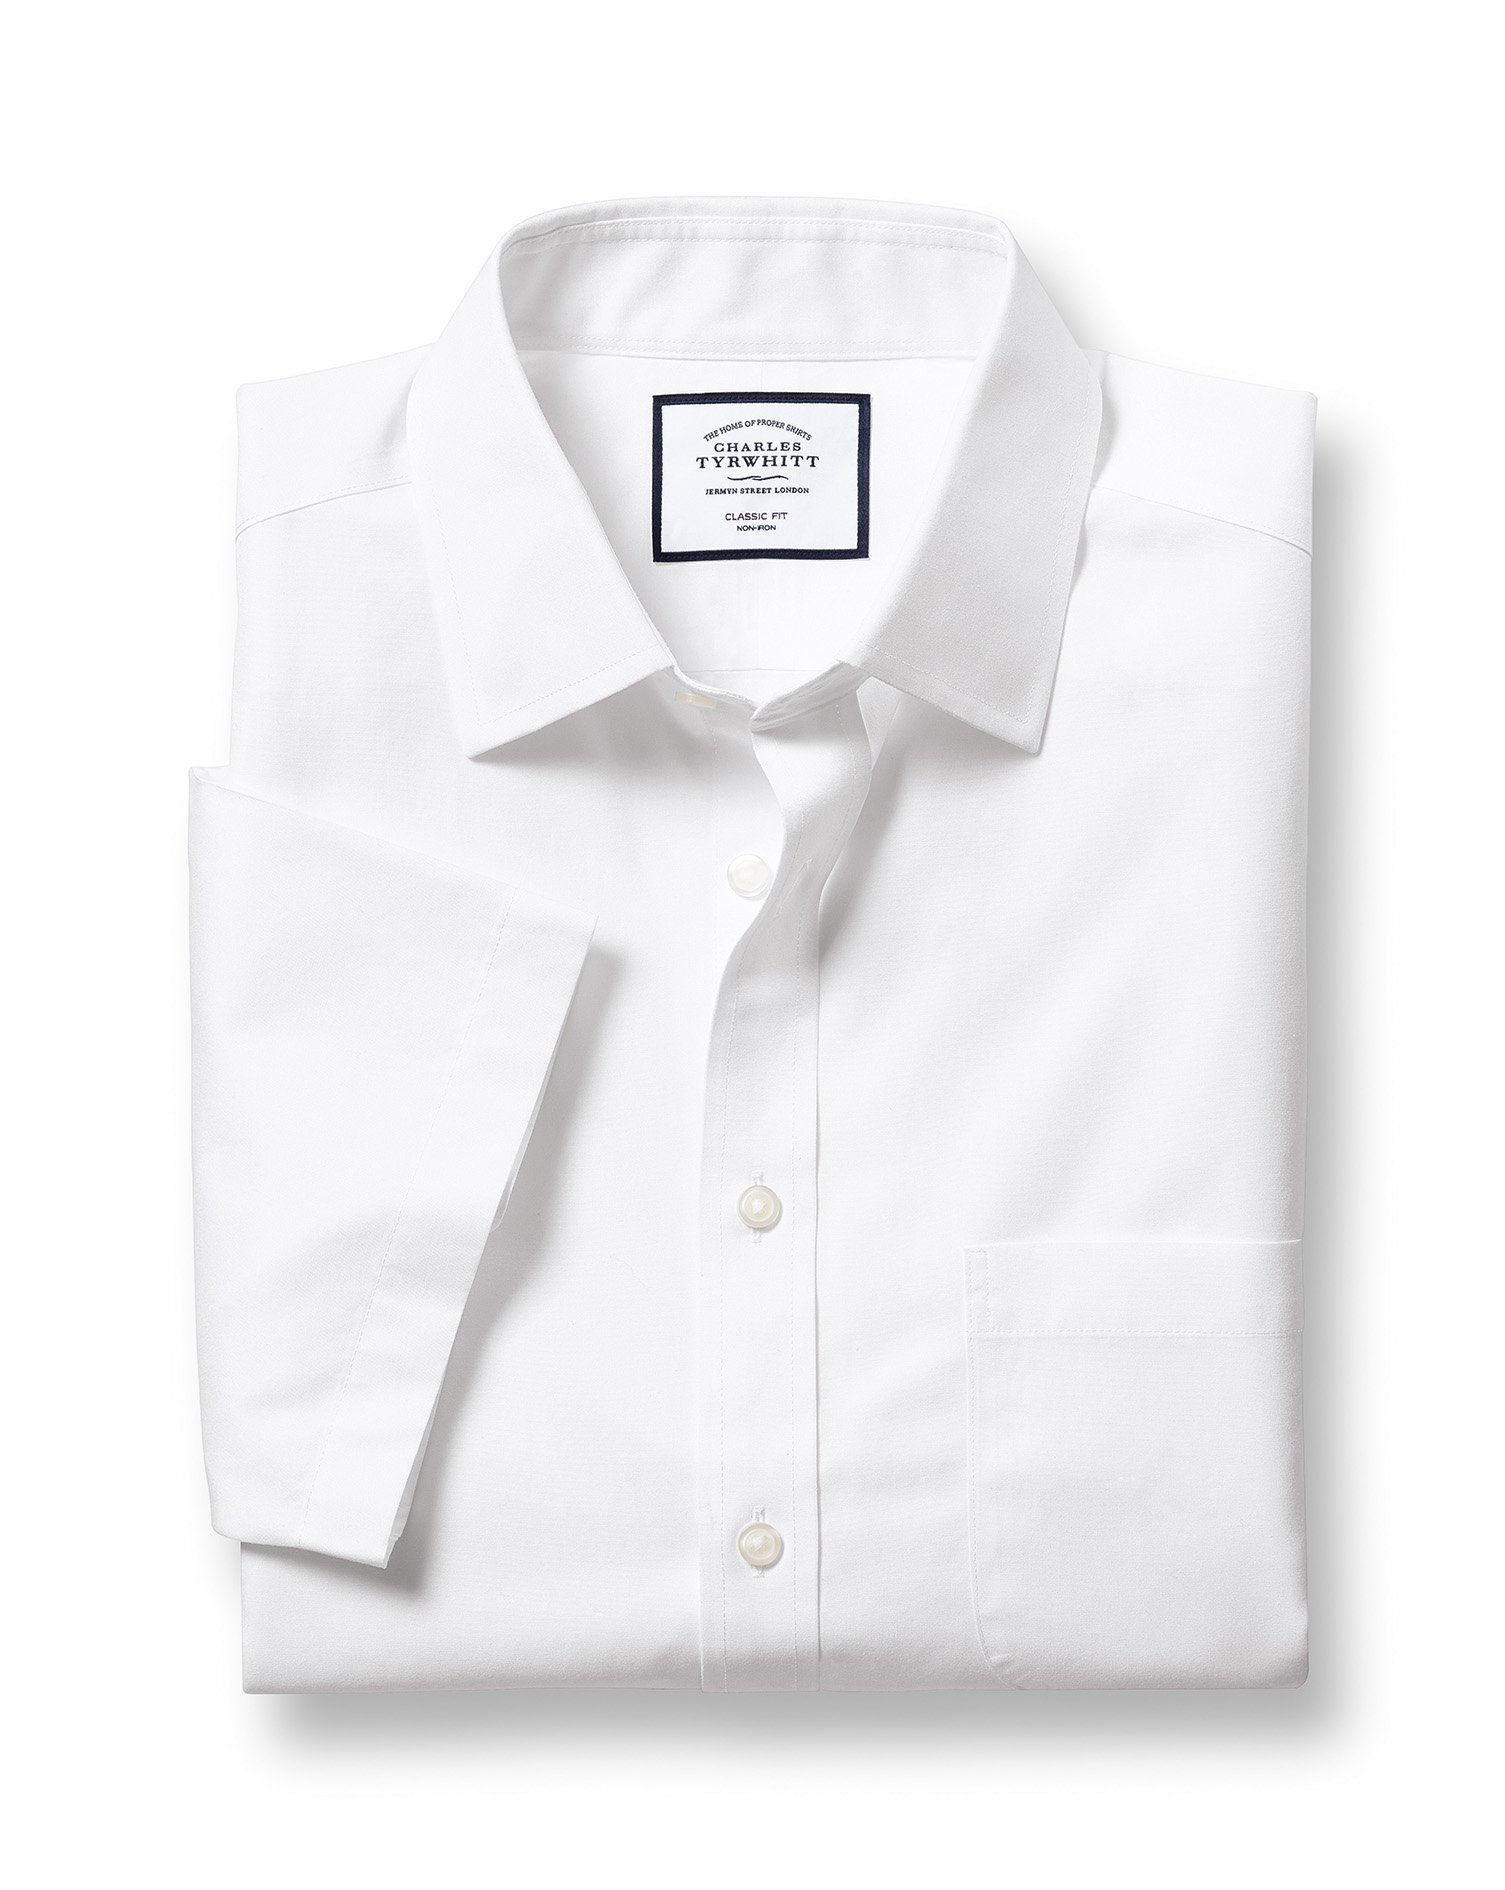 Classic Fit Non-Iron Natural Cool Short Sleeve White Cotton Formal Shirt Size 15/Short by Charles Ty